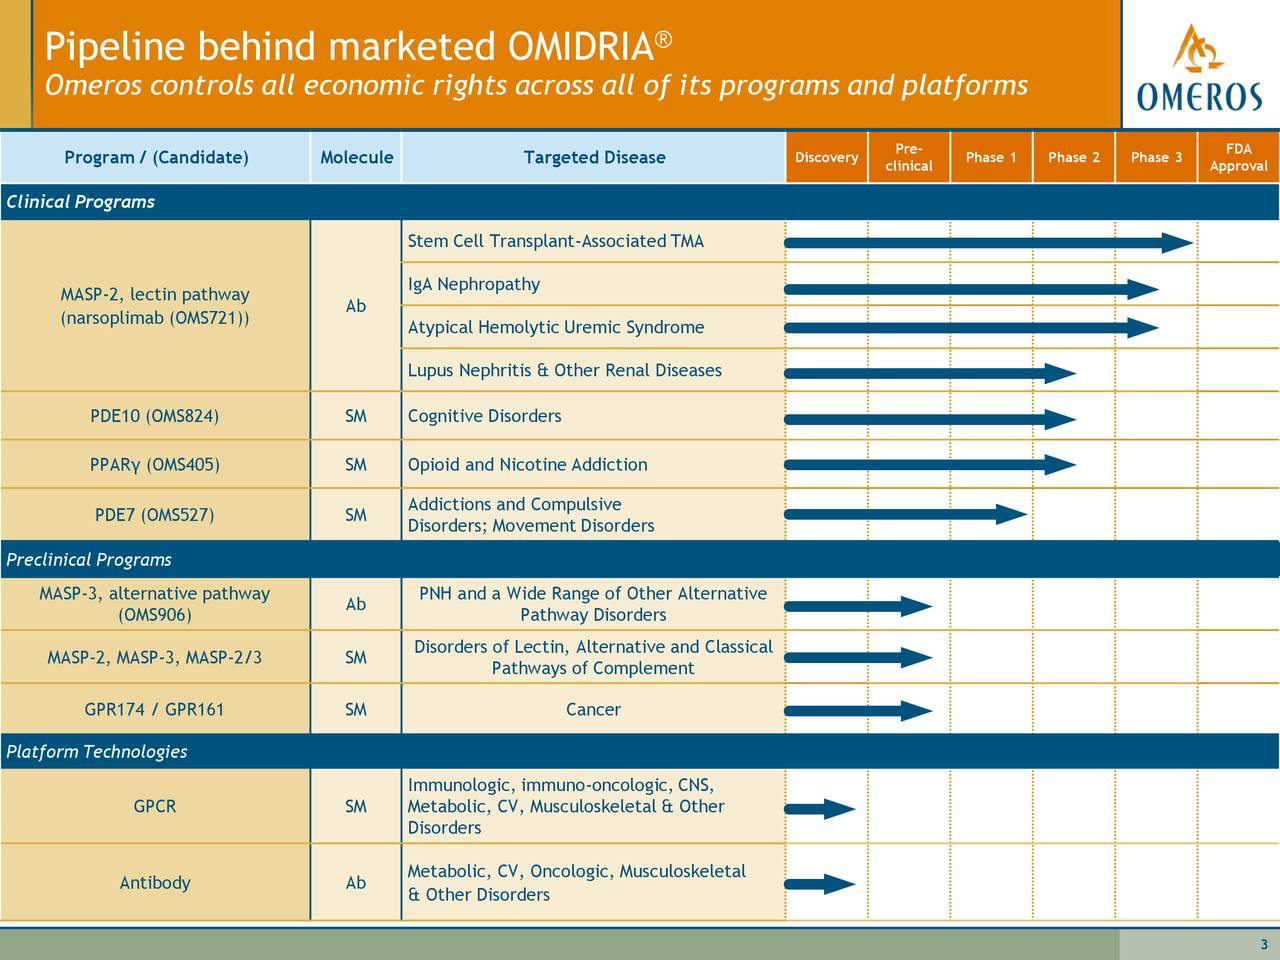 Pipeline behind marketed OMIDRIA                                     ®